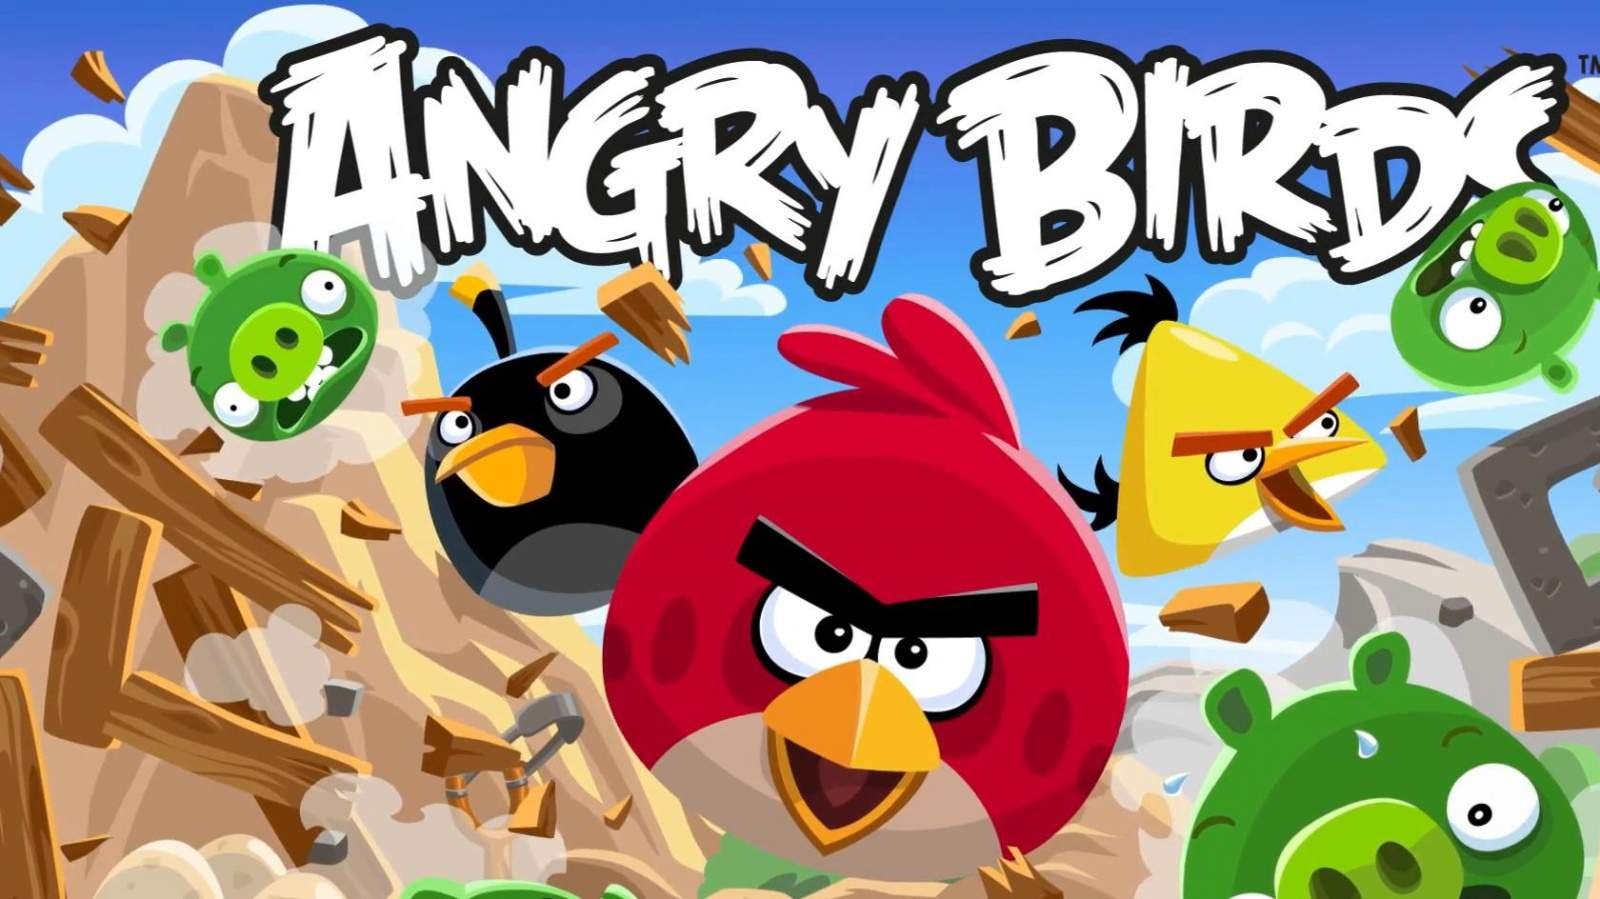 Original Angry Birds take flight again in 15 brand new levels | Cult of  Android - Cult of Android